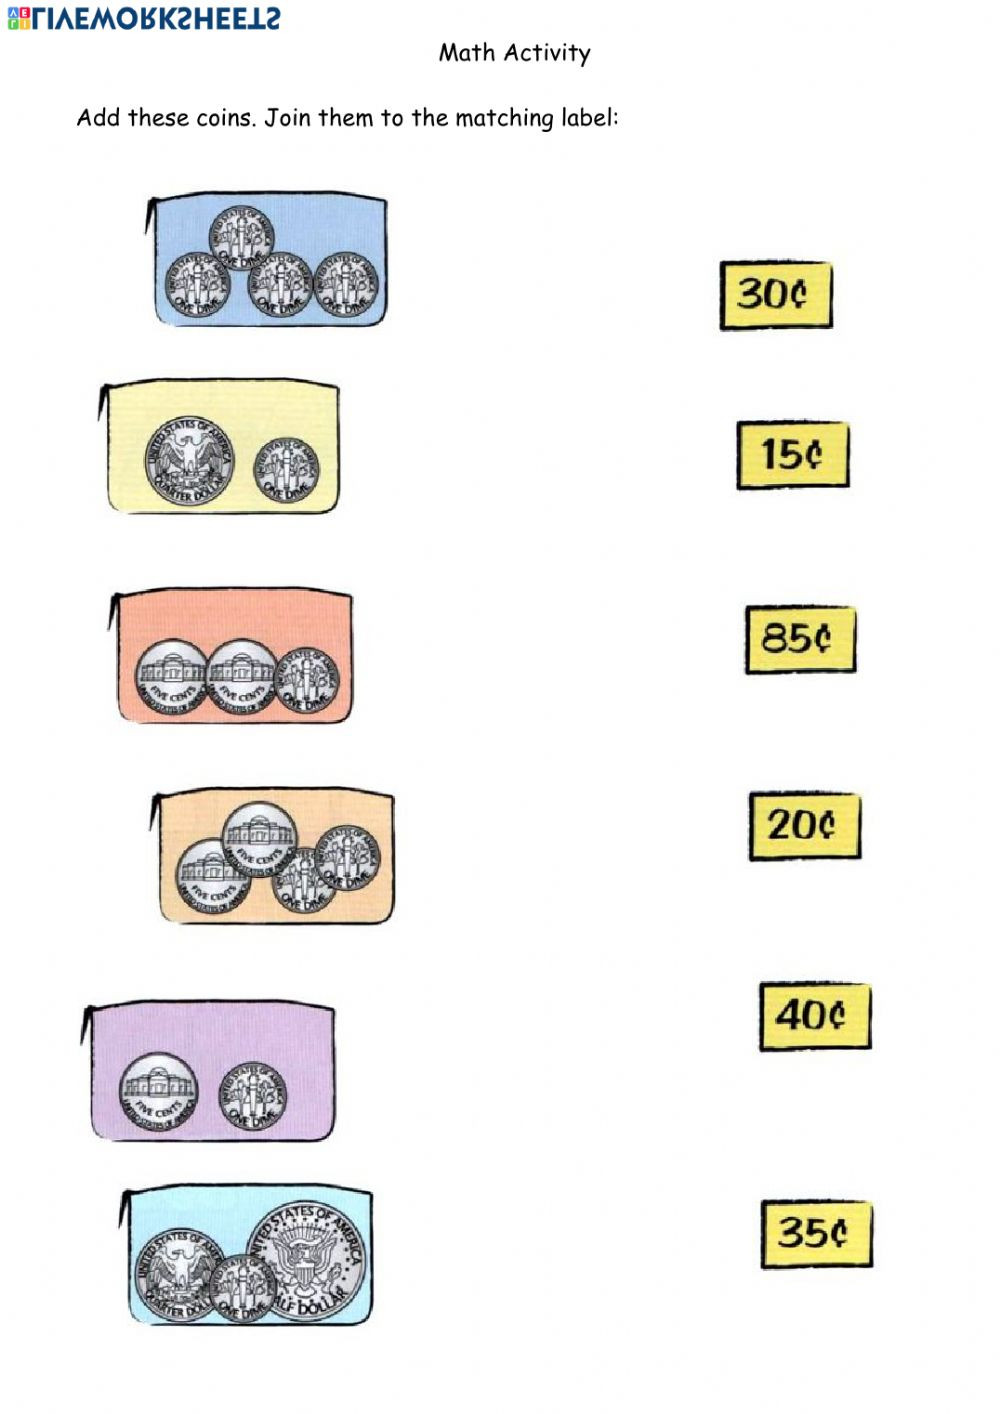 Shopping Math Worksheets Math Shopping Using Coins 2 April 14 Interactive Worksheet